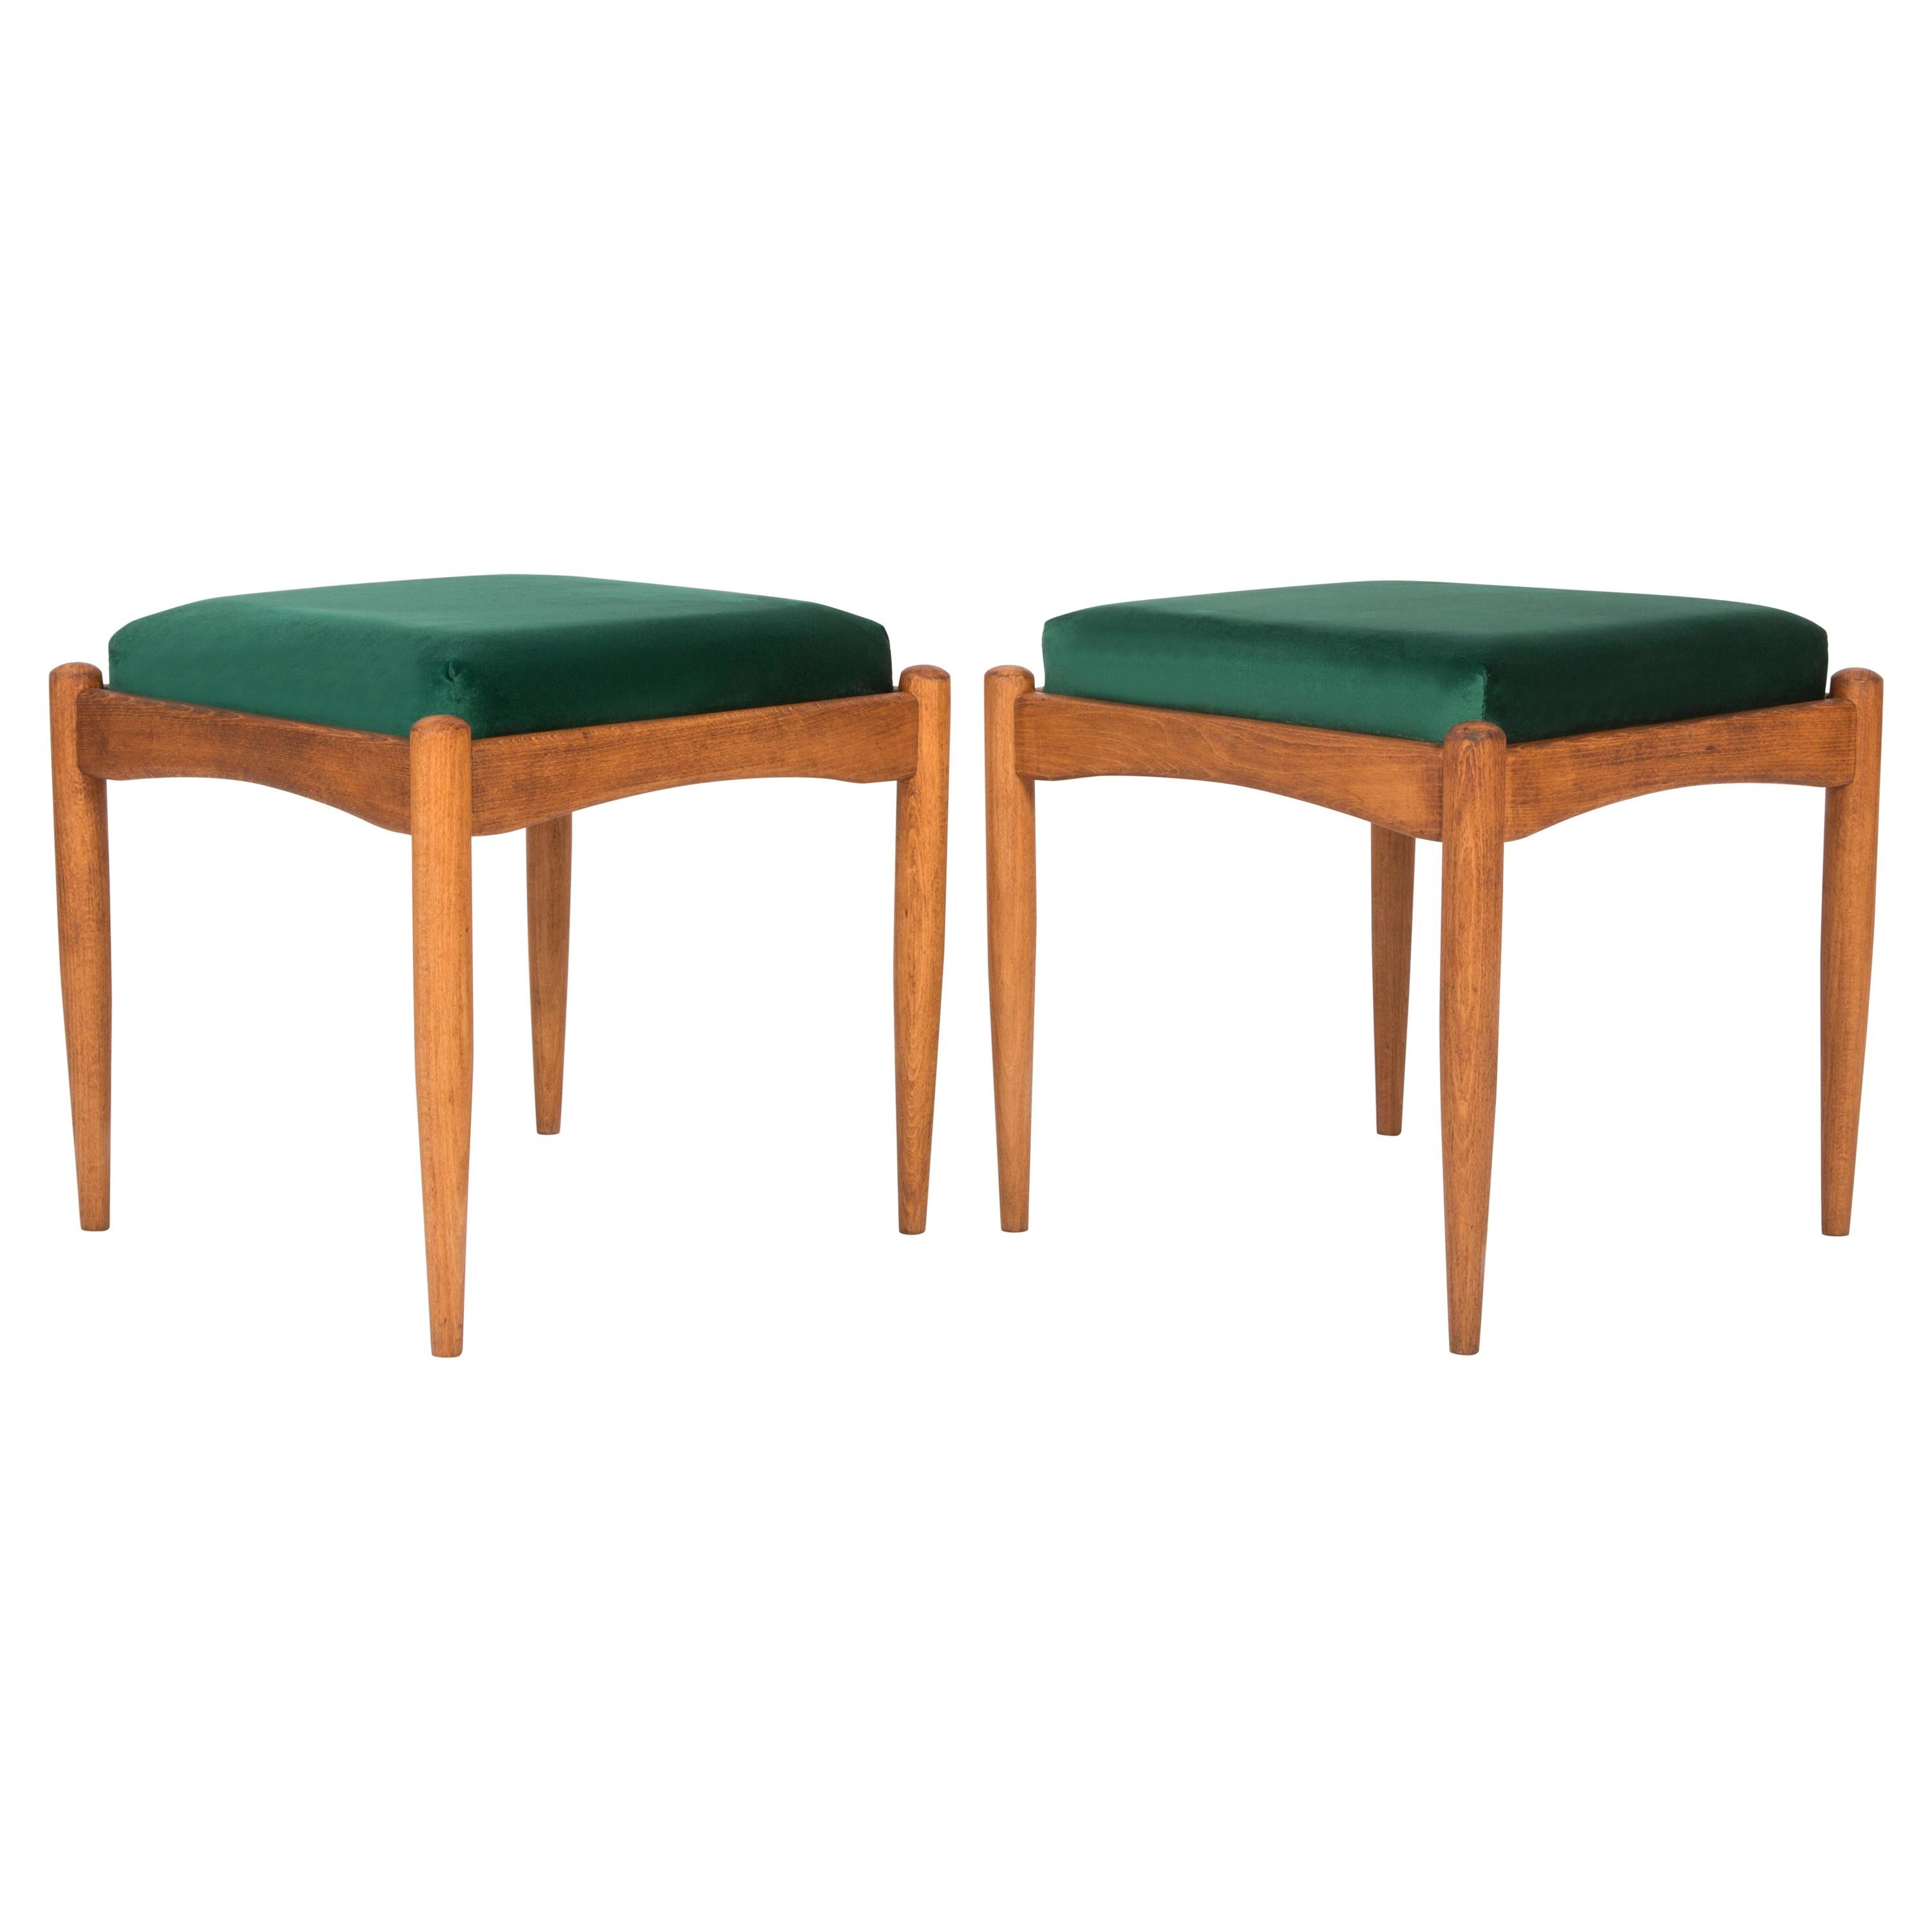 Set of Two 20th Century Green Stools, 1960s